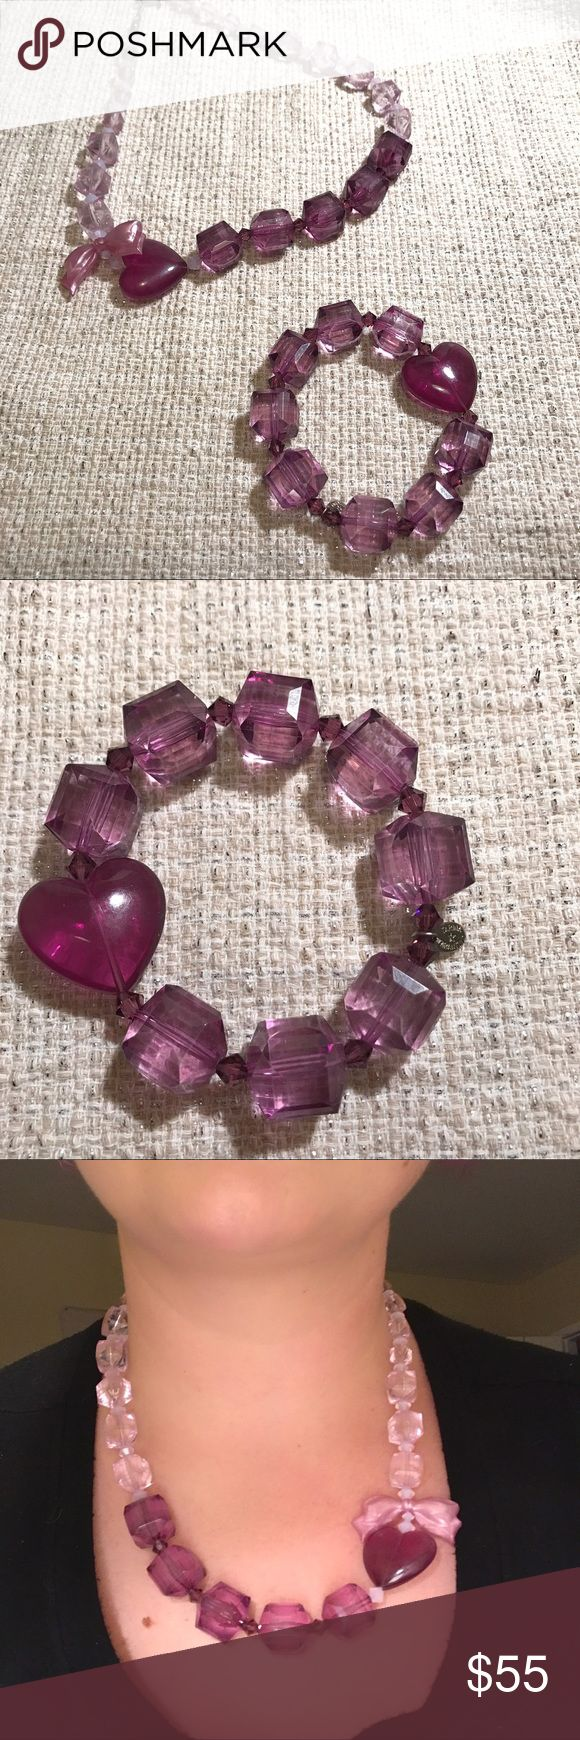 Tarina Tarantino purple lucite set Necklace and bracelet set from TT- chunky lucite beads with girly bow and heart detail. Super fabulous 💜💜💜💜 Tarina Tarantino Jewelry Necklaces